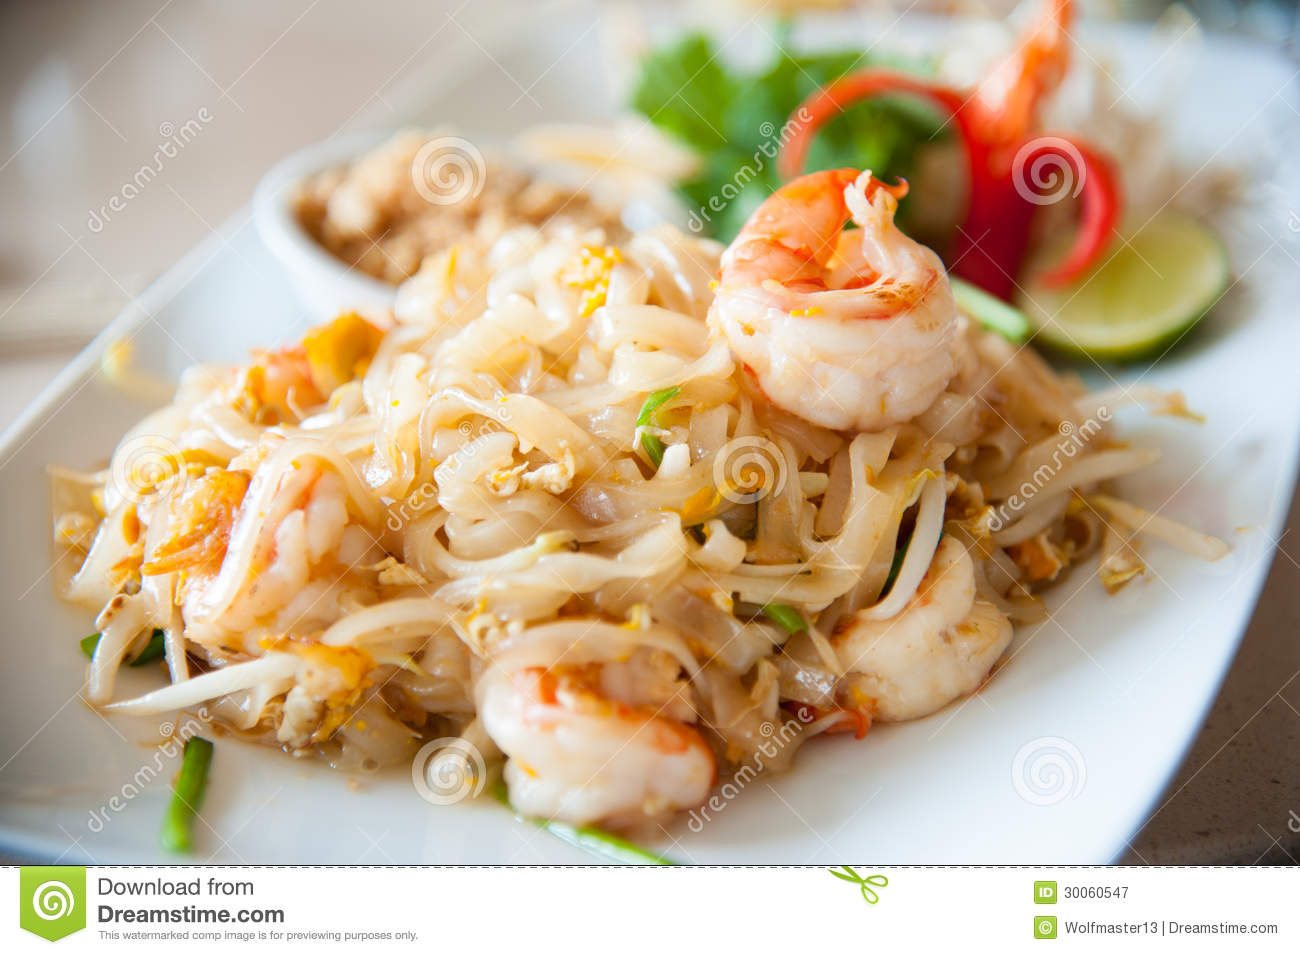 ... , stir-fried rice noodles with egg, vegetable and shrimp (Pad Thai